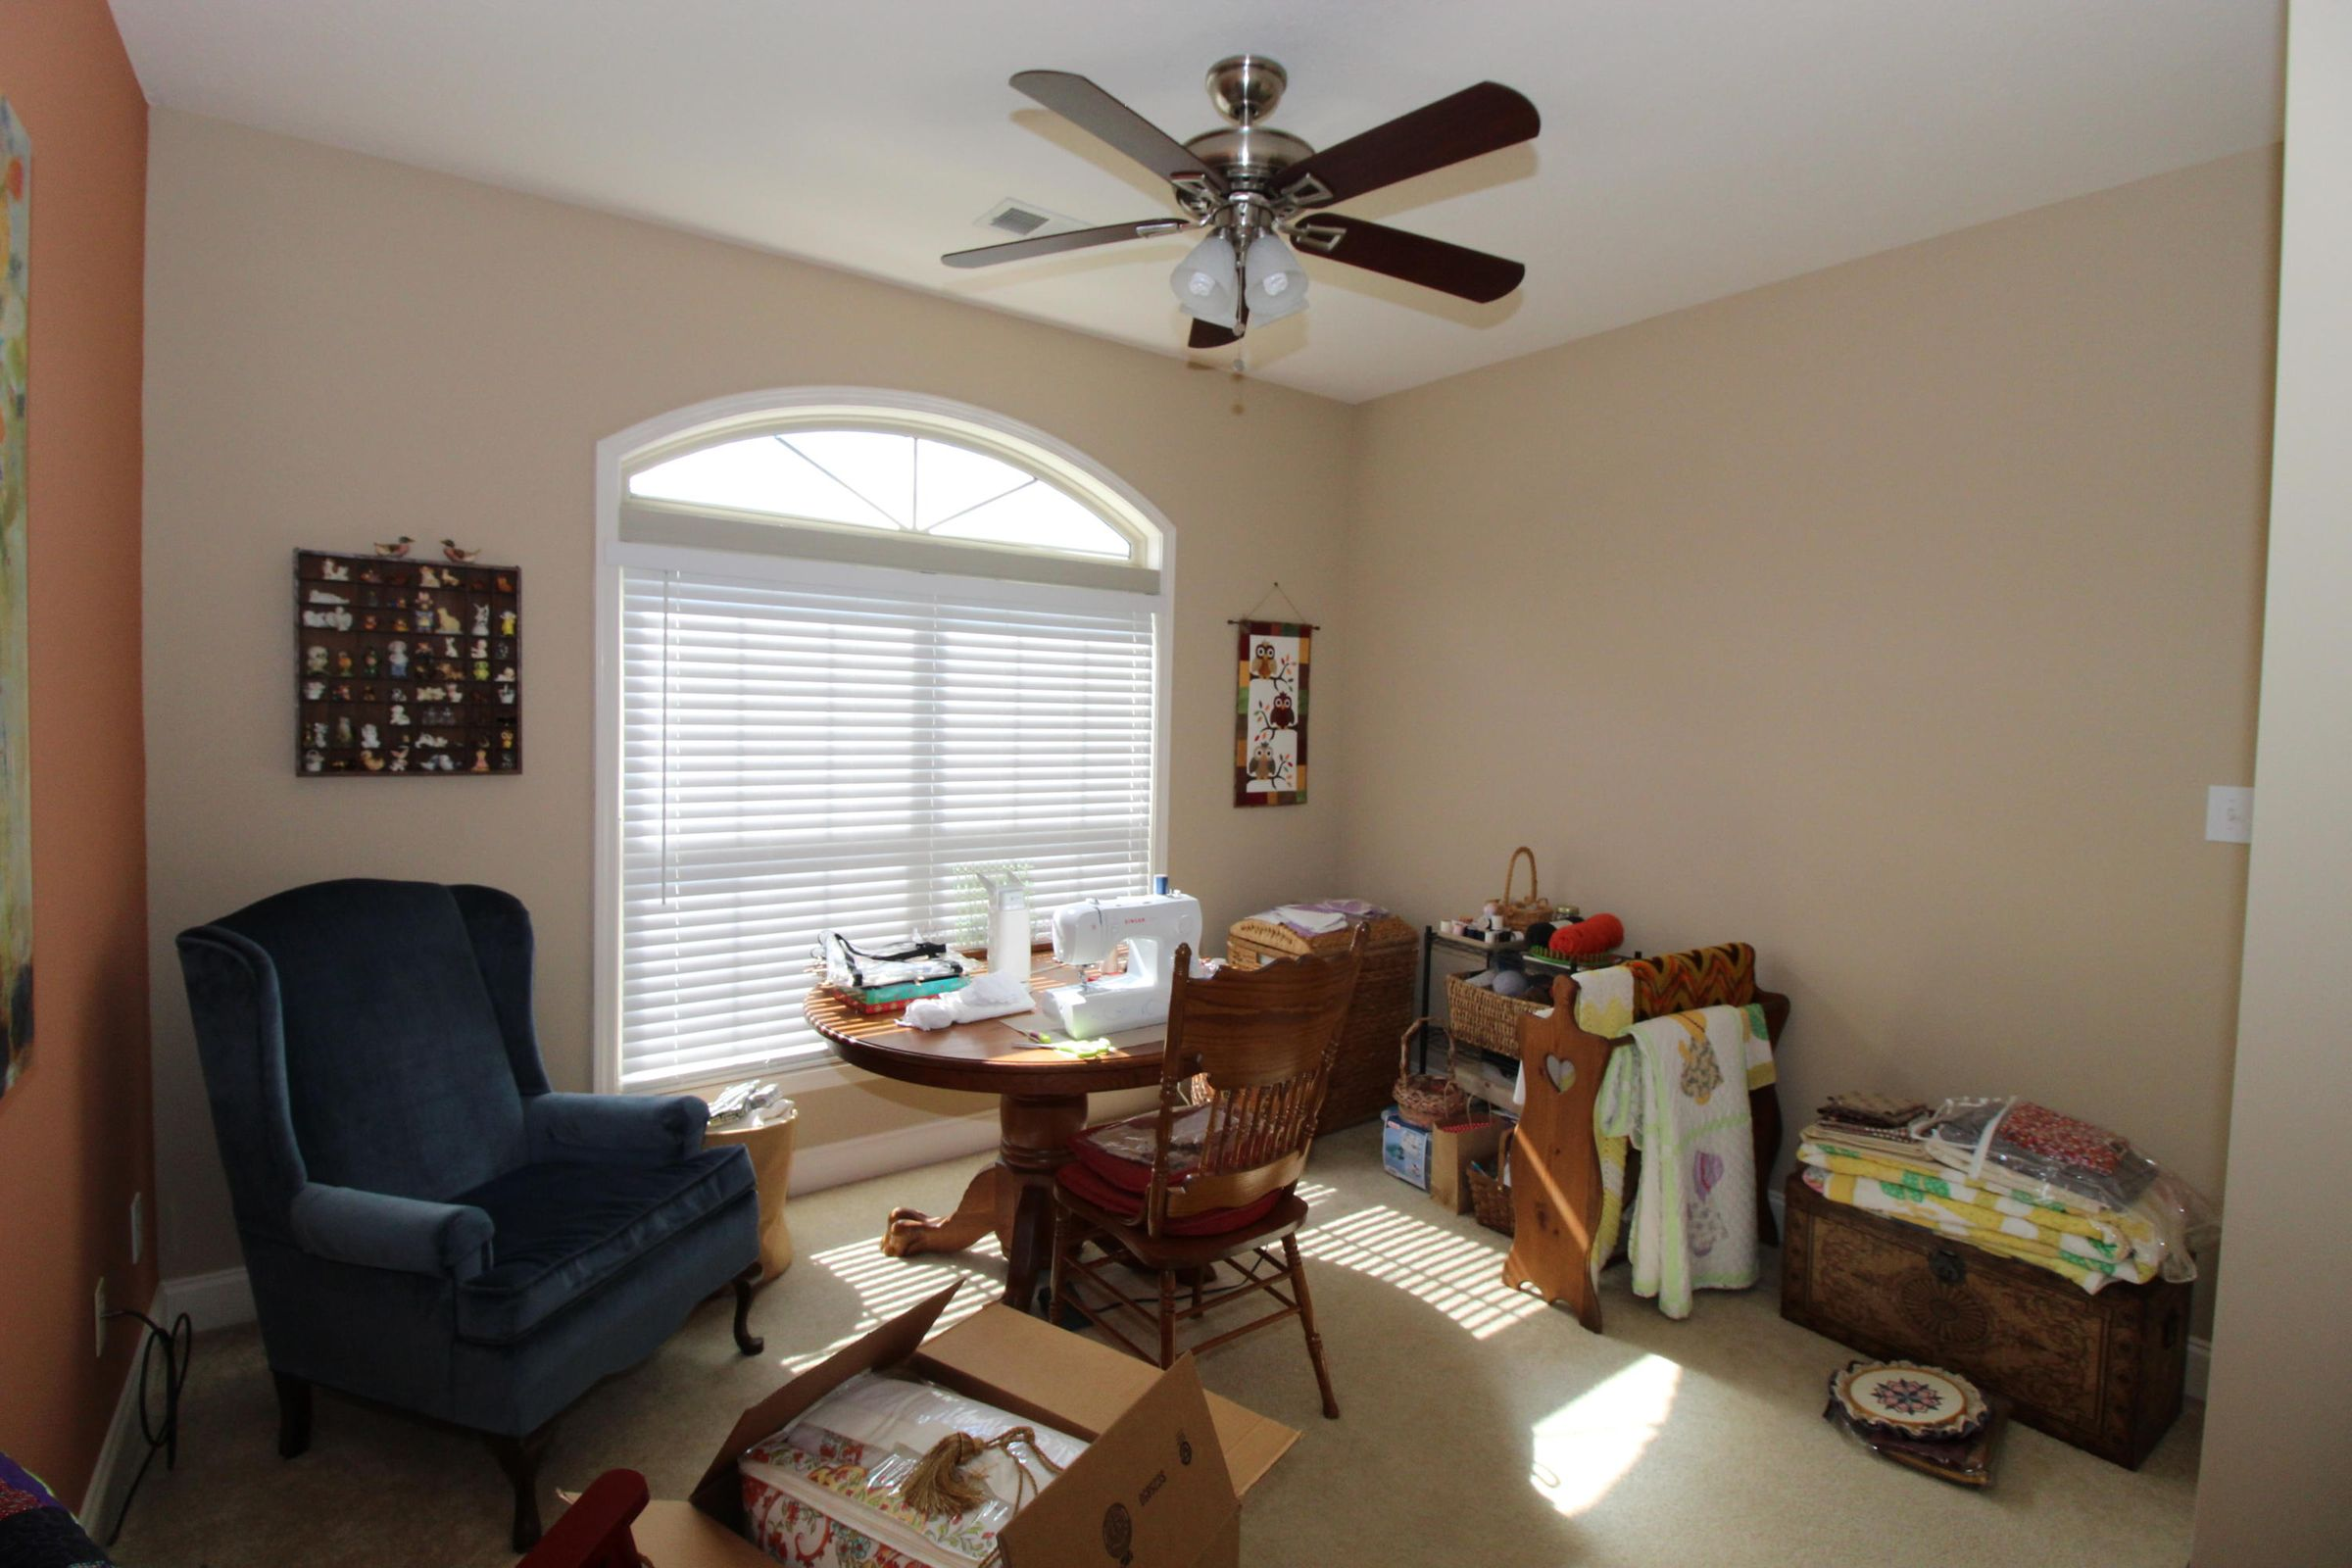 3rd bedroom, used as a sewing room